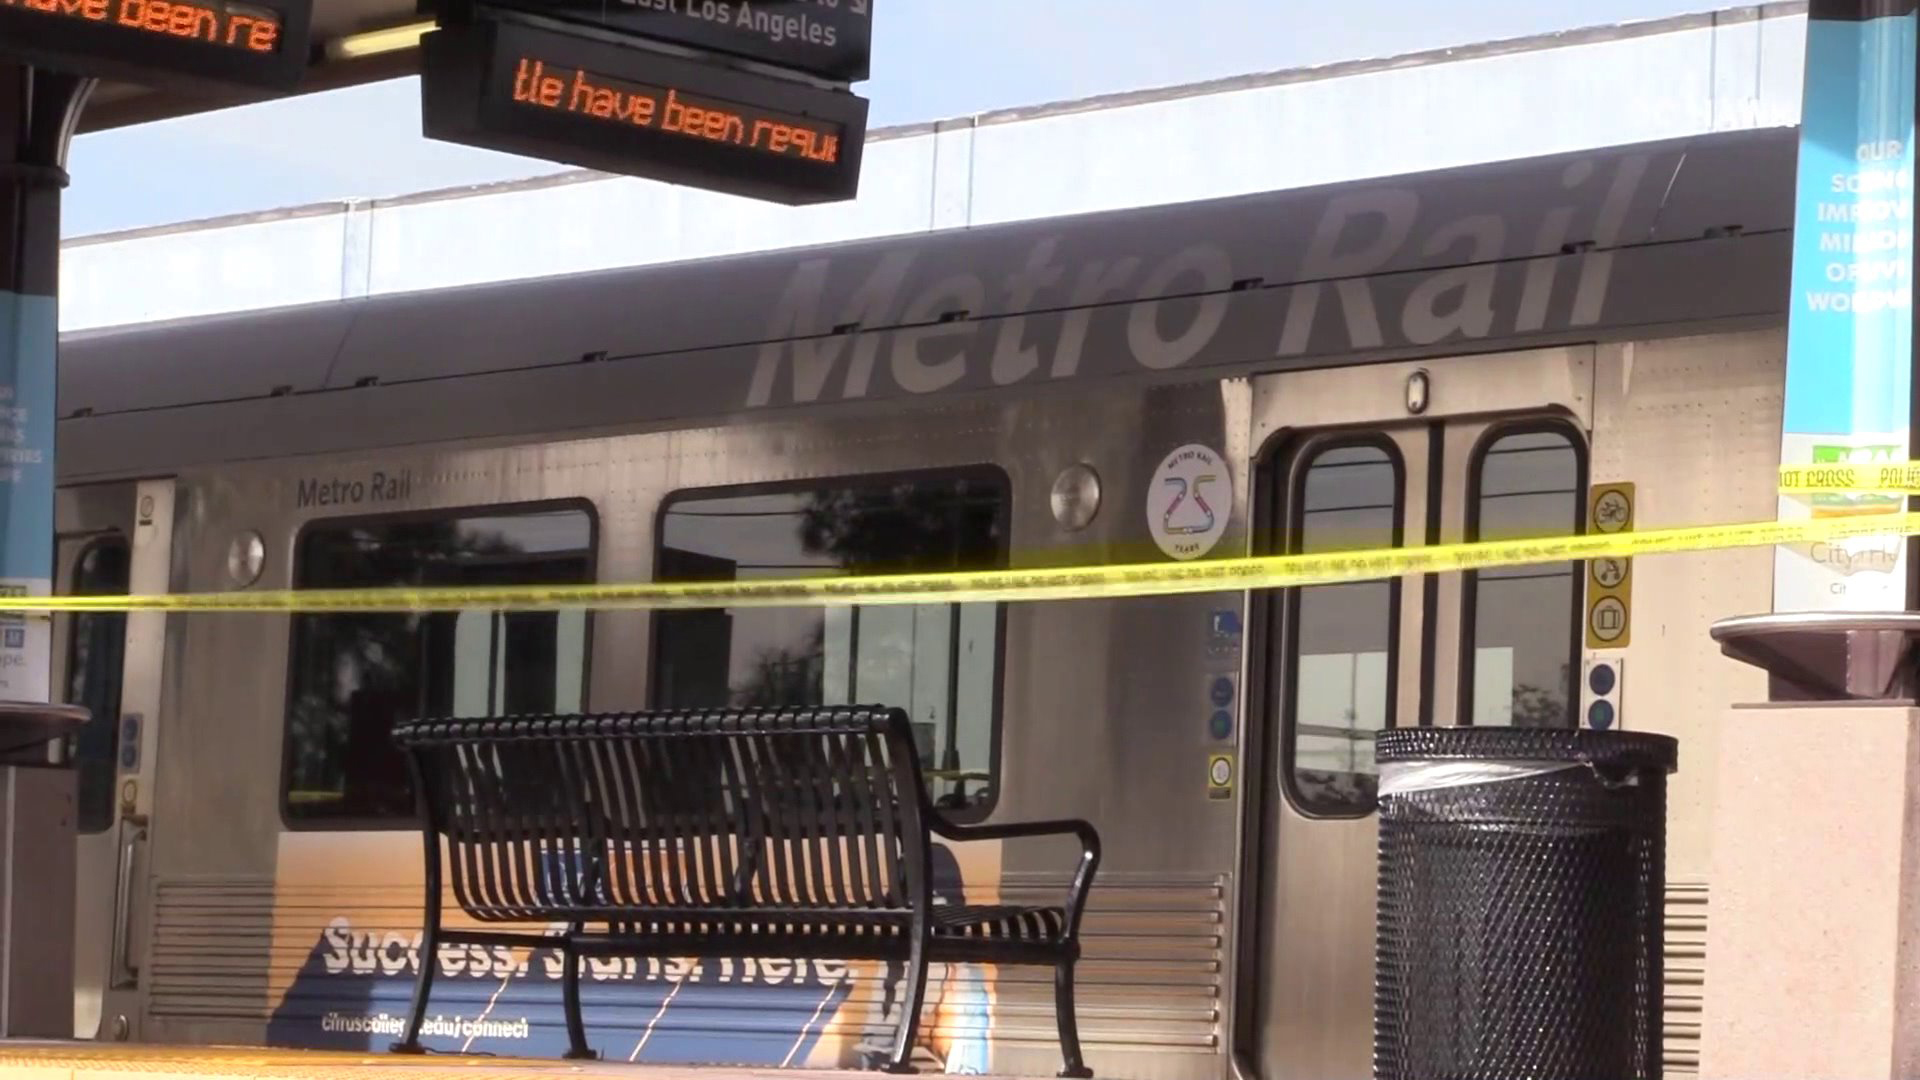 An investigation was underway at a Metro station in Duarte after a passenger was fatally stabbed aboard a Gold Line train on Nov. 27, 2018. (Credit: OC Hawk)